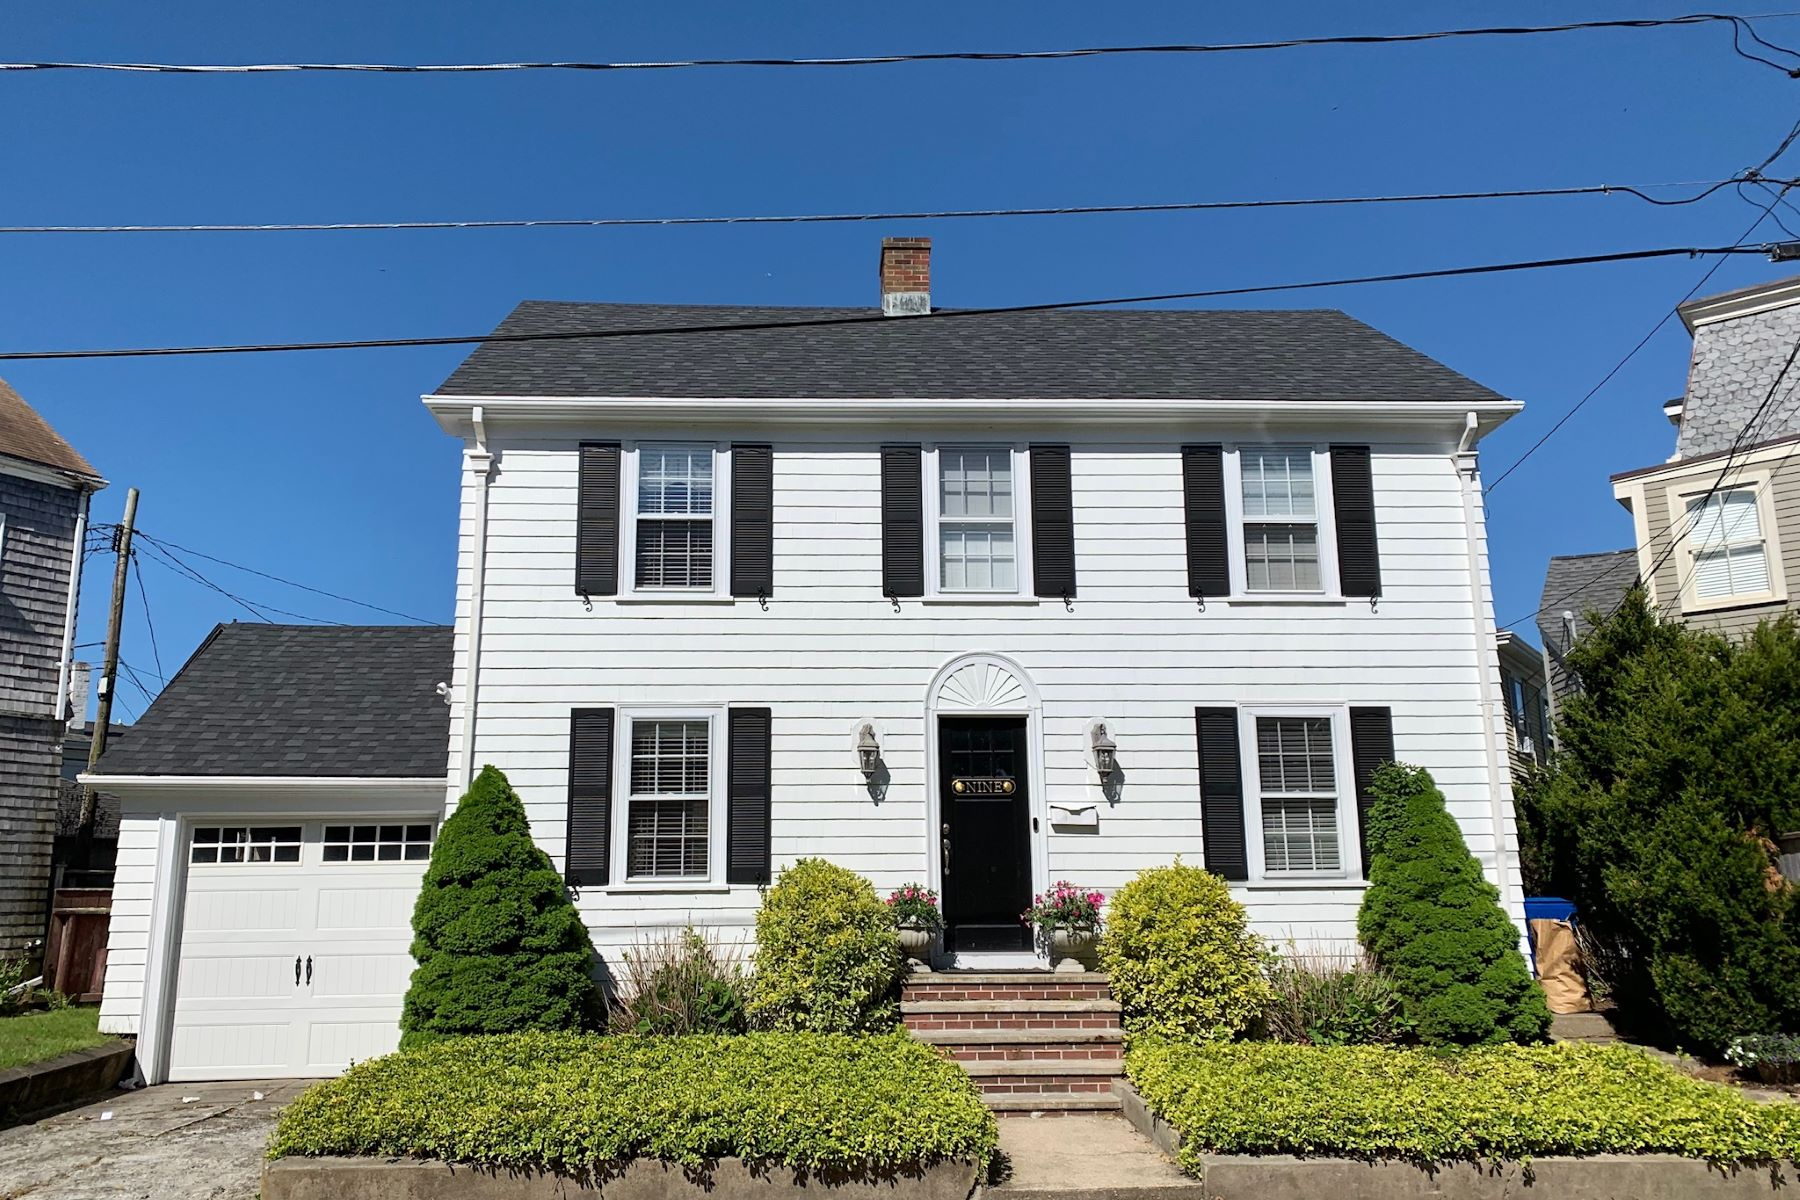 Single Family Homes for Sale at Adorable Colonial on Historic Hill 9 Brinley Street Newport, Rhode Island 02840 United States